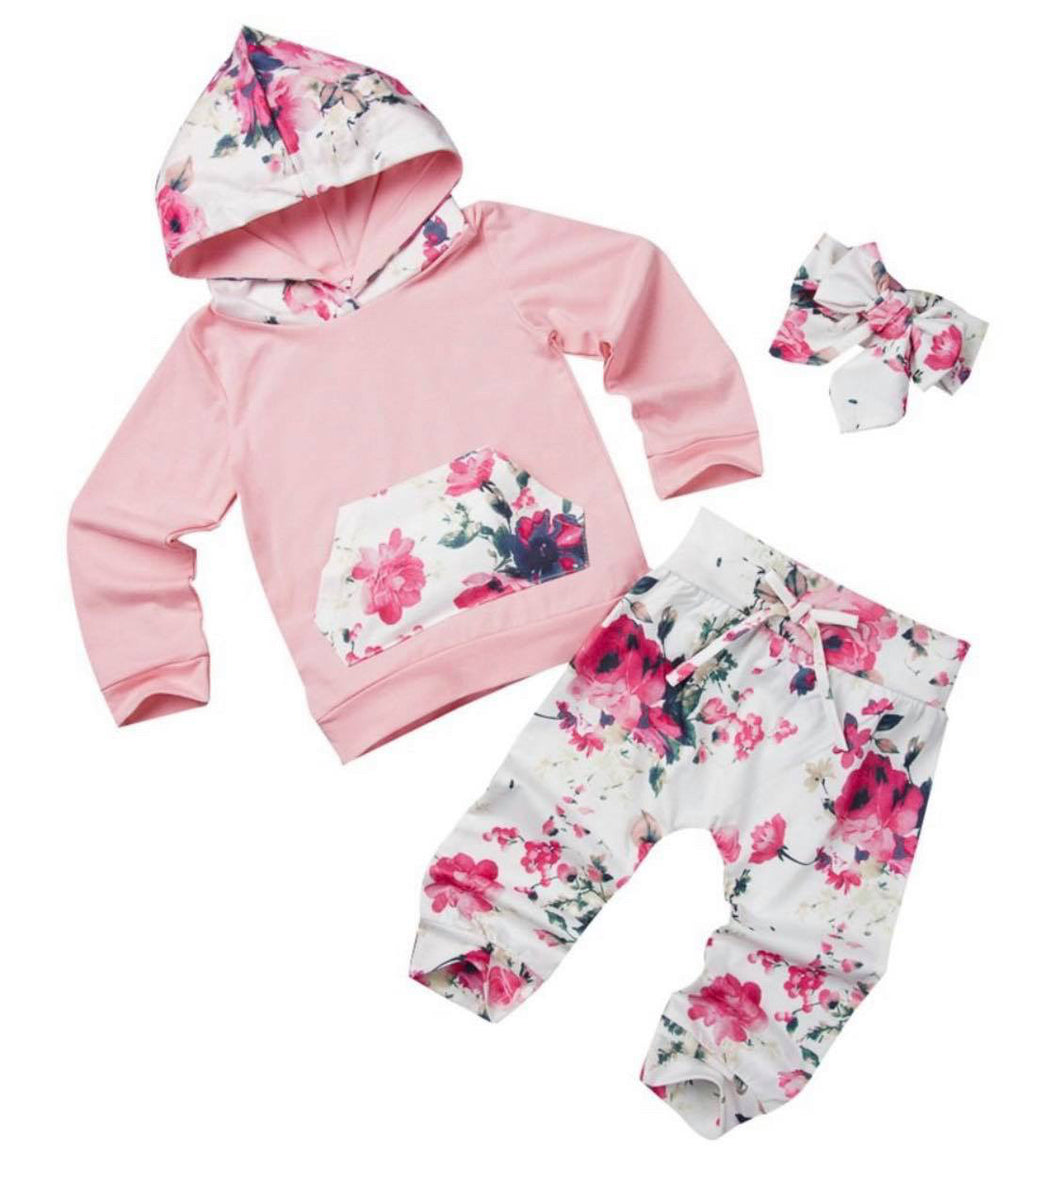 Girls tracksuit size 6 months - pink and floral